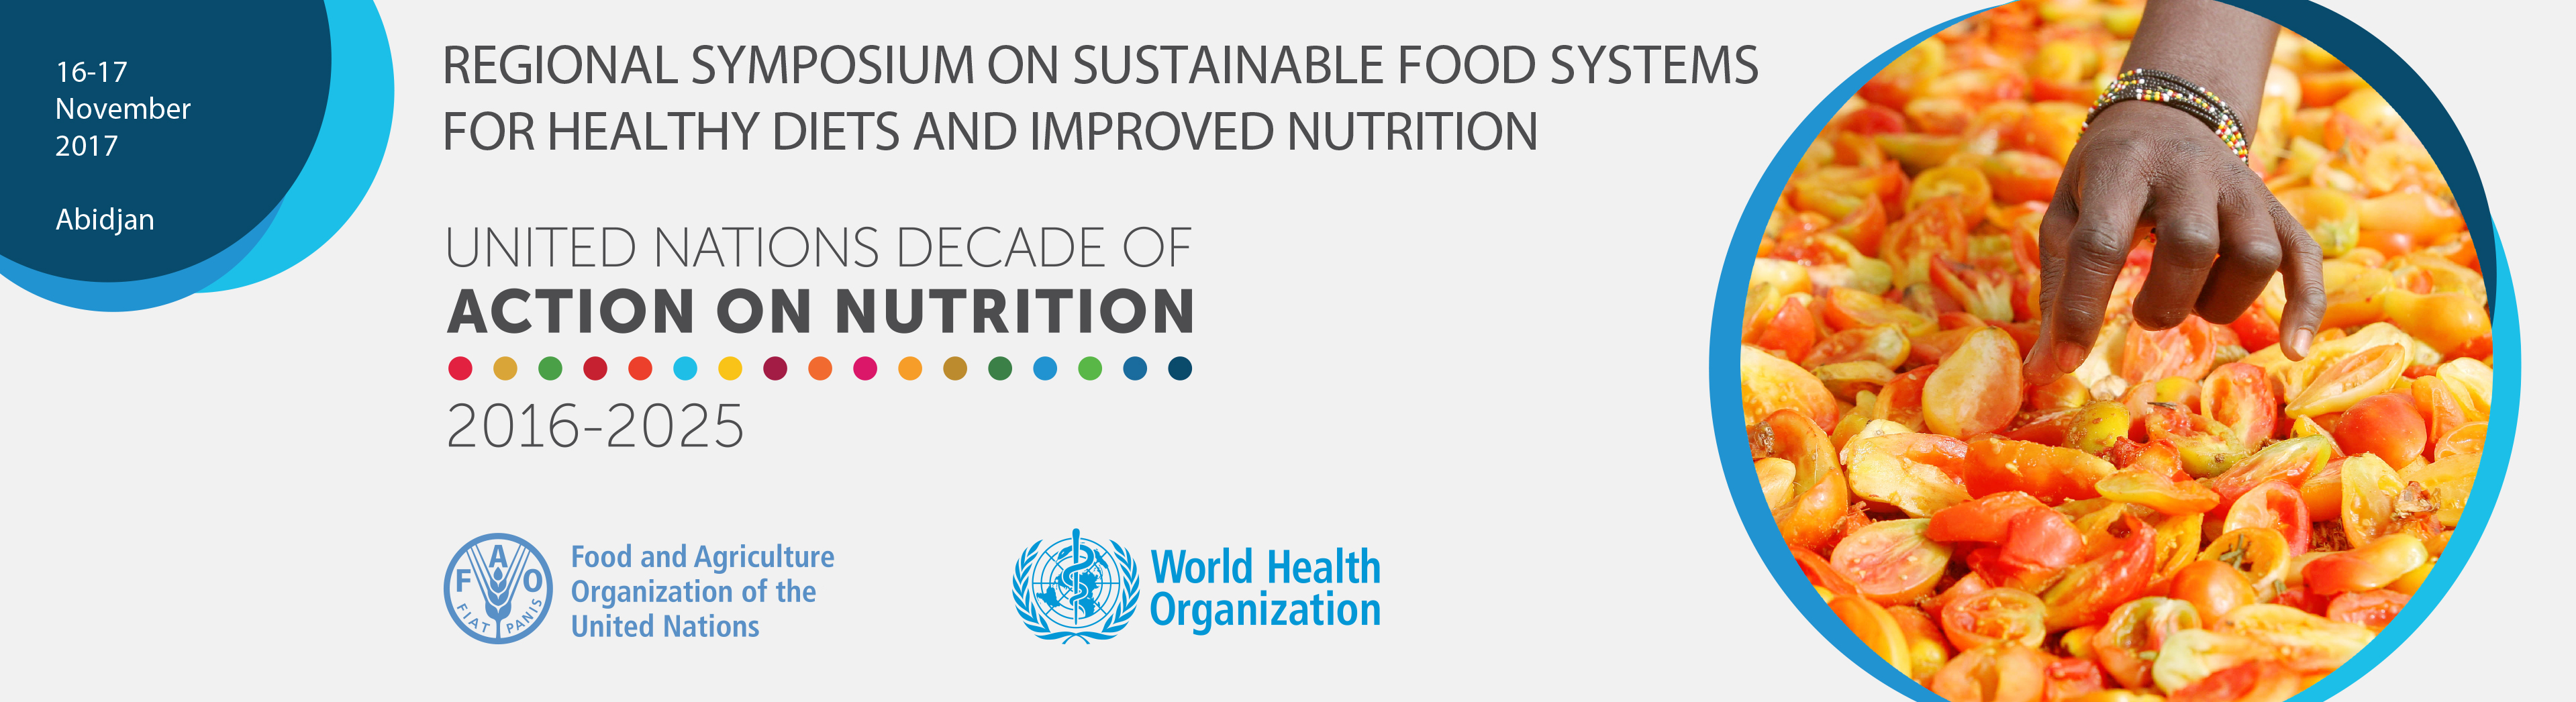 regional symposium on sustainable food systems for healthy diets and